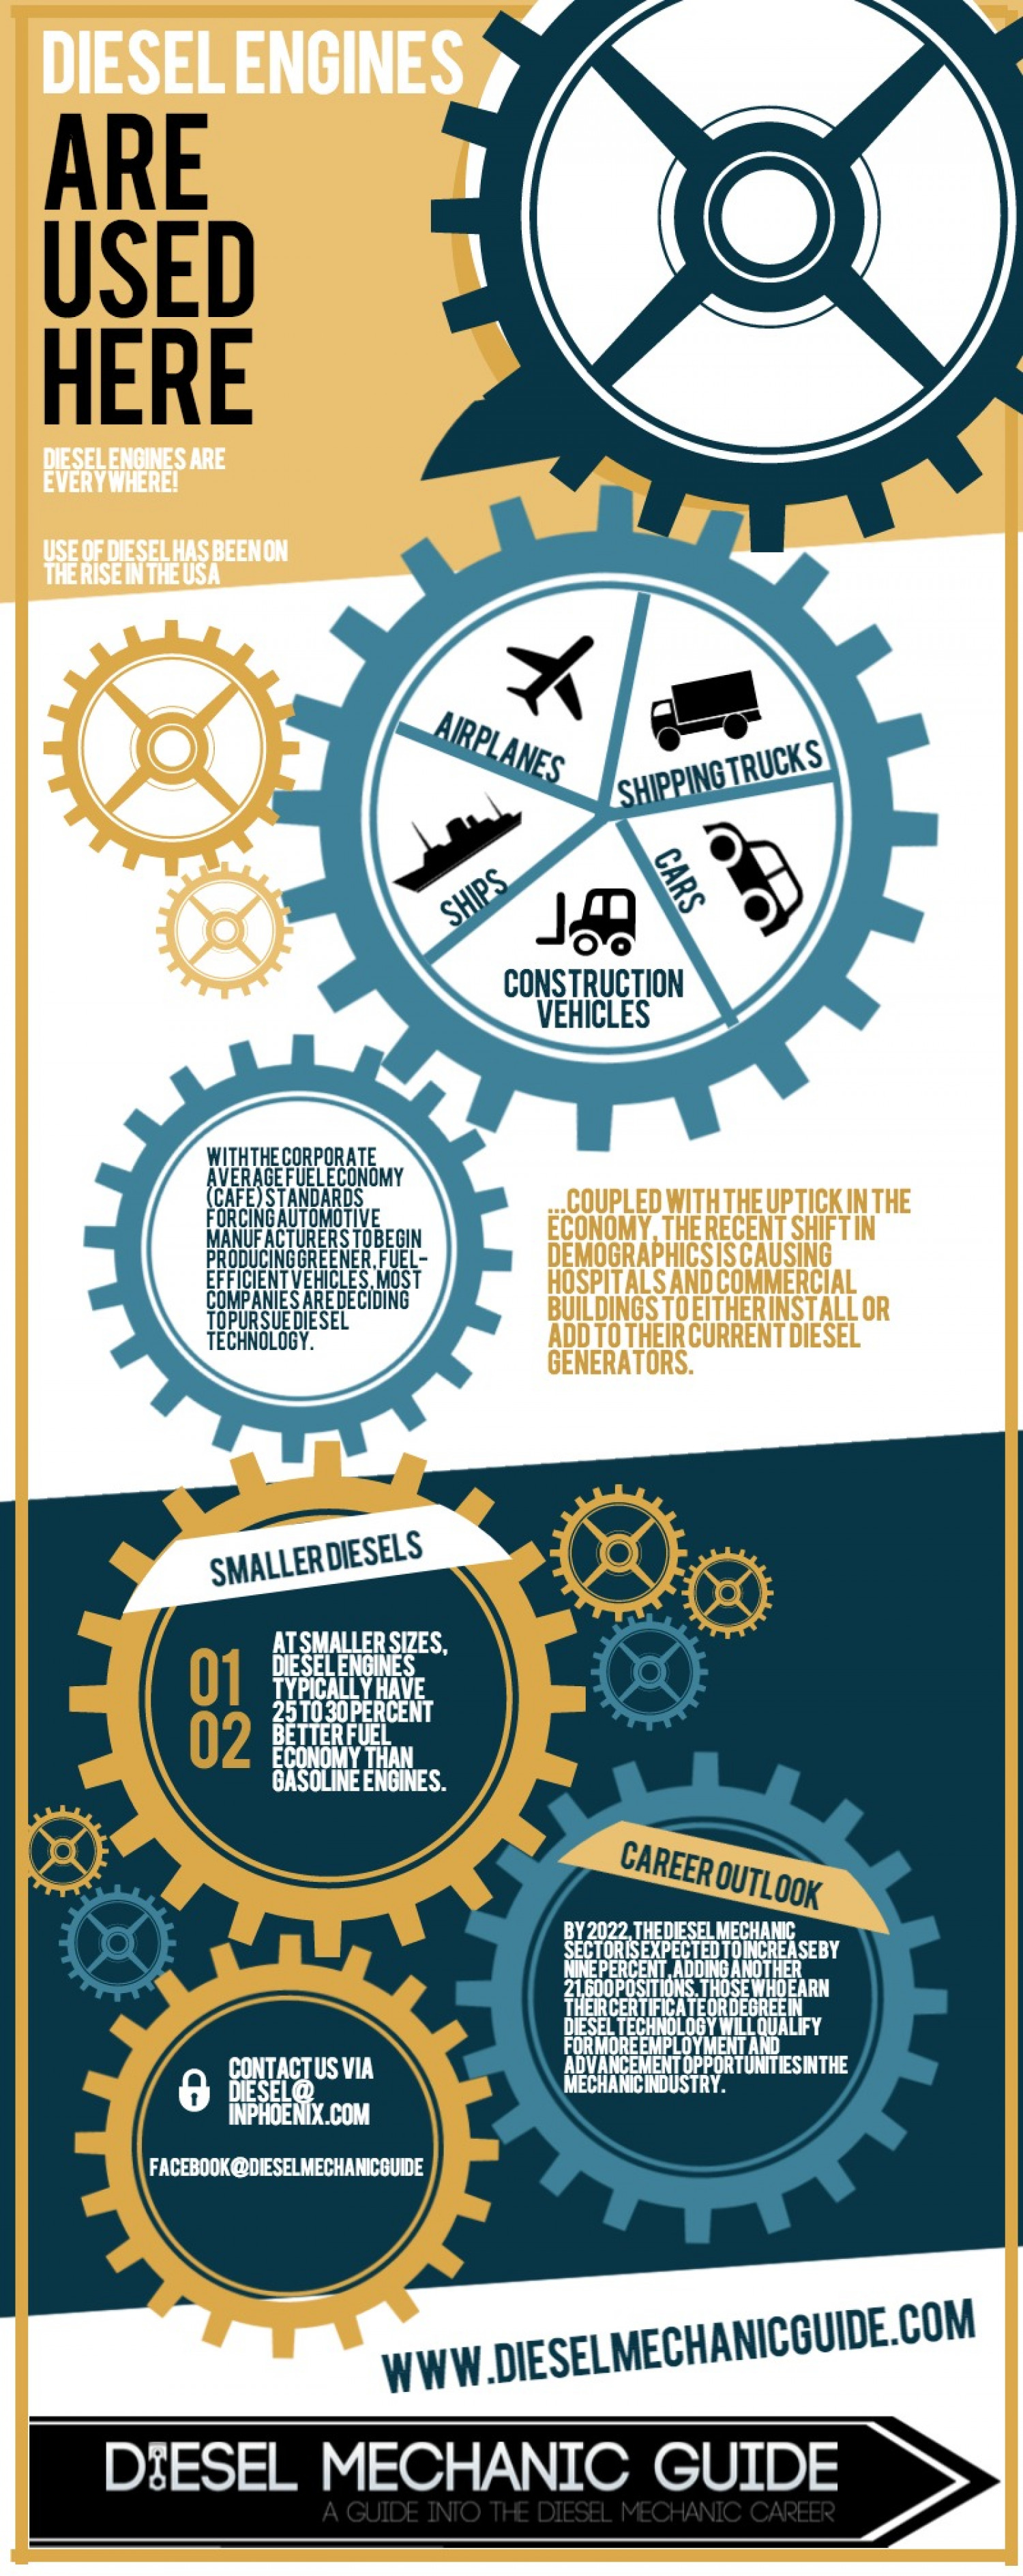 Where Are Diesel Engines Used Infographic